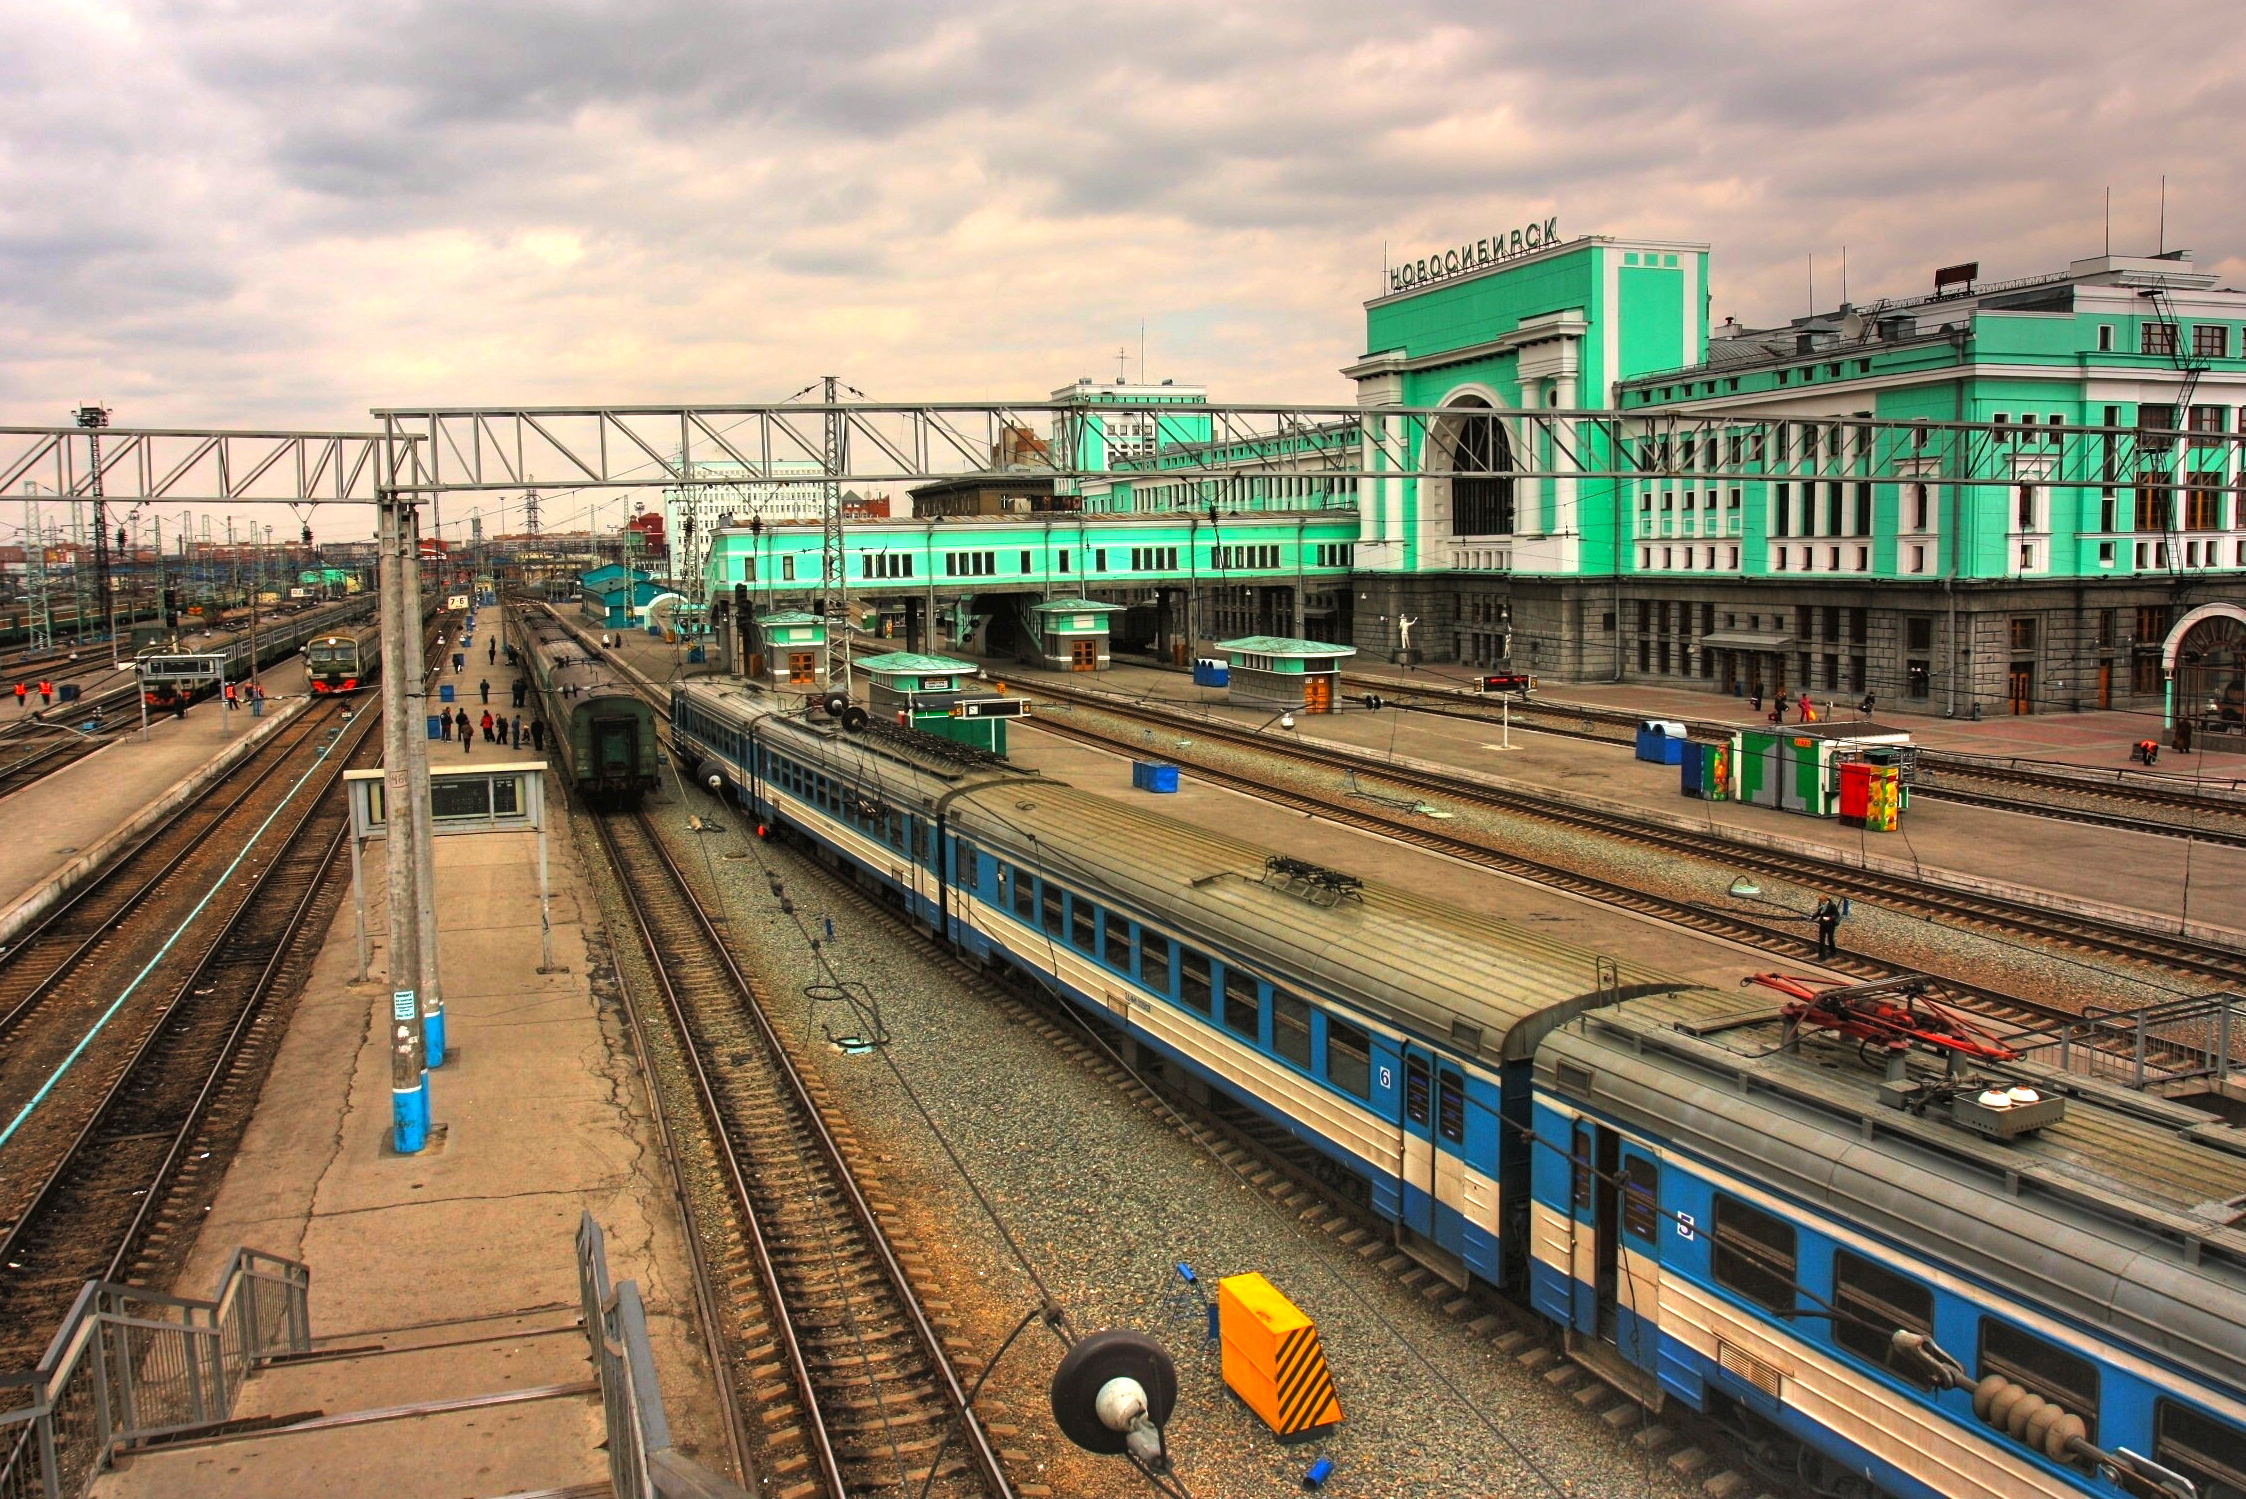 Novosibirsk is the third-largest city in Russia, after Moscow and Saint Petersburg, and the largest city of Siberia.